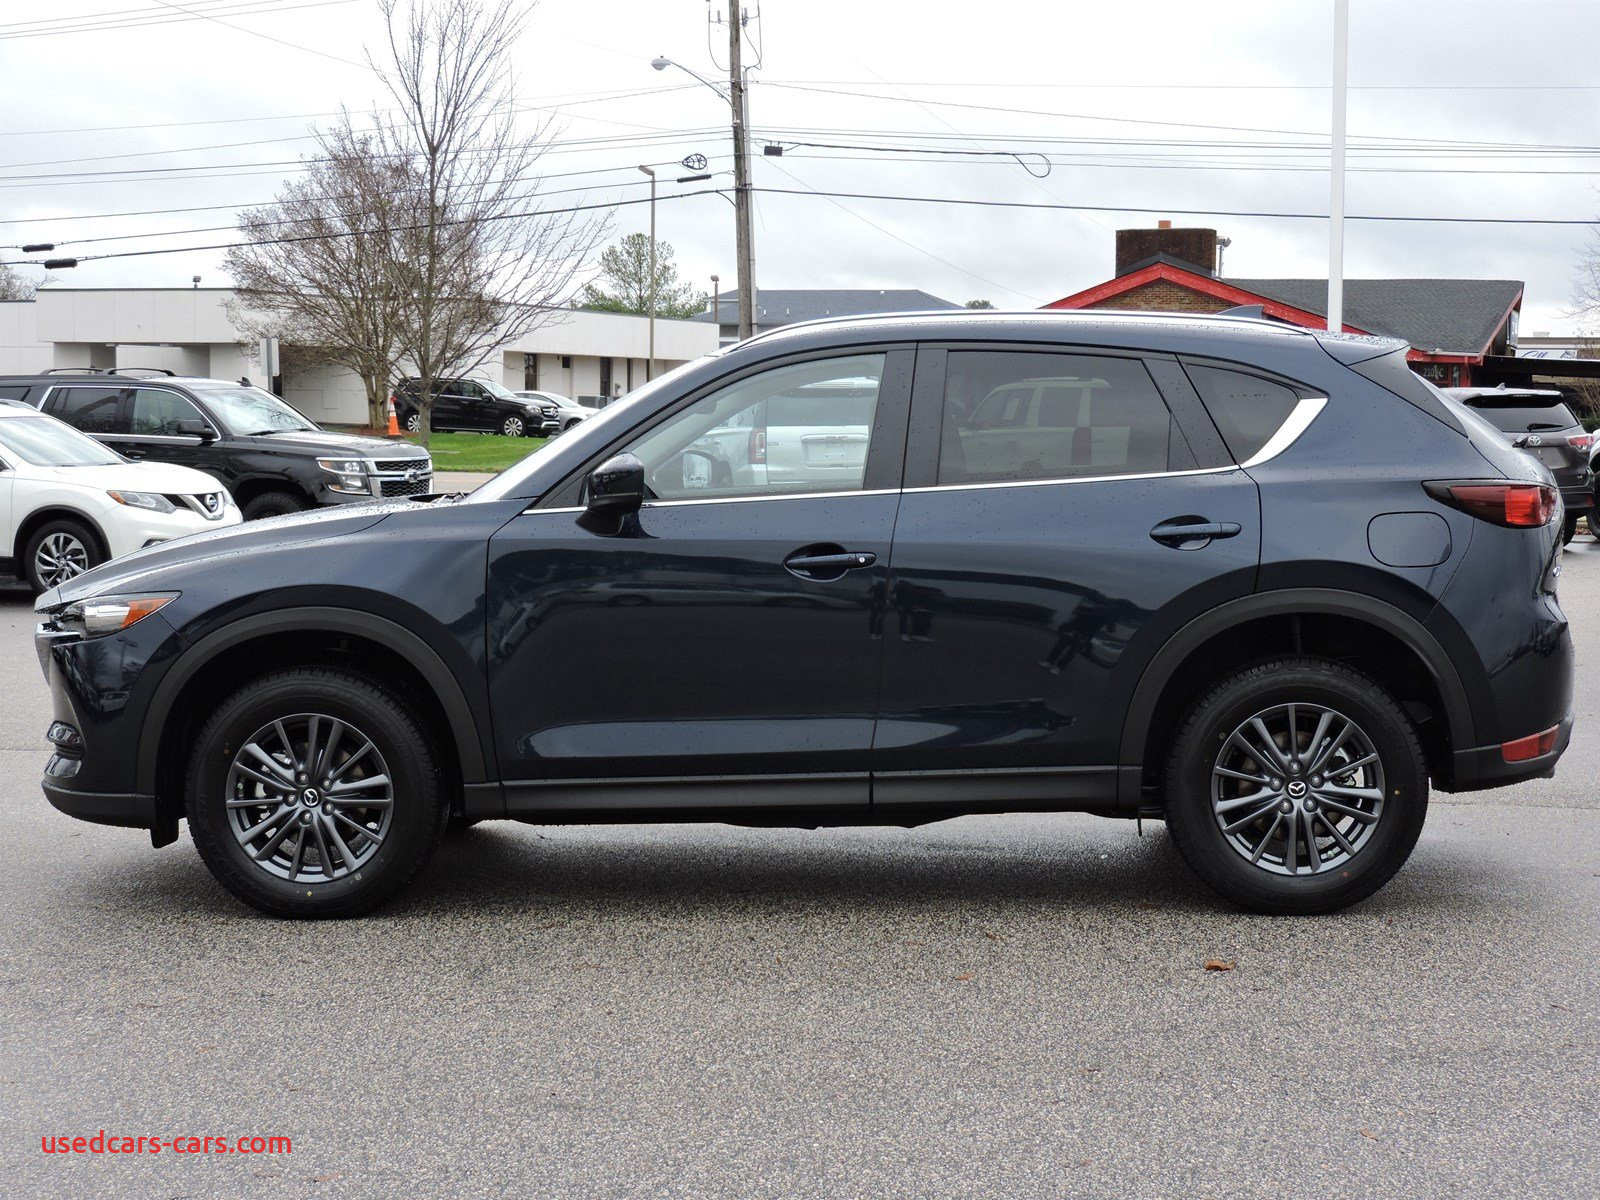 Mazda Cx 5 Leasing Inspirational New 2020 Mazda Cx 5 touring Fwd Suv